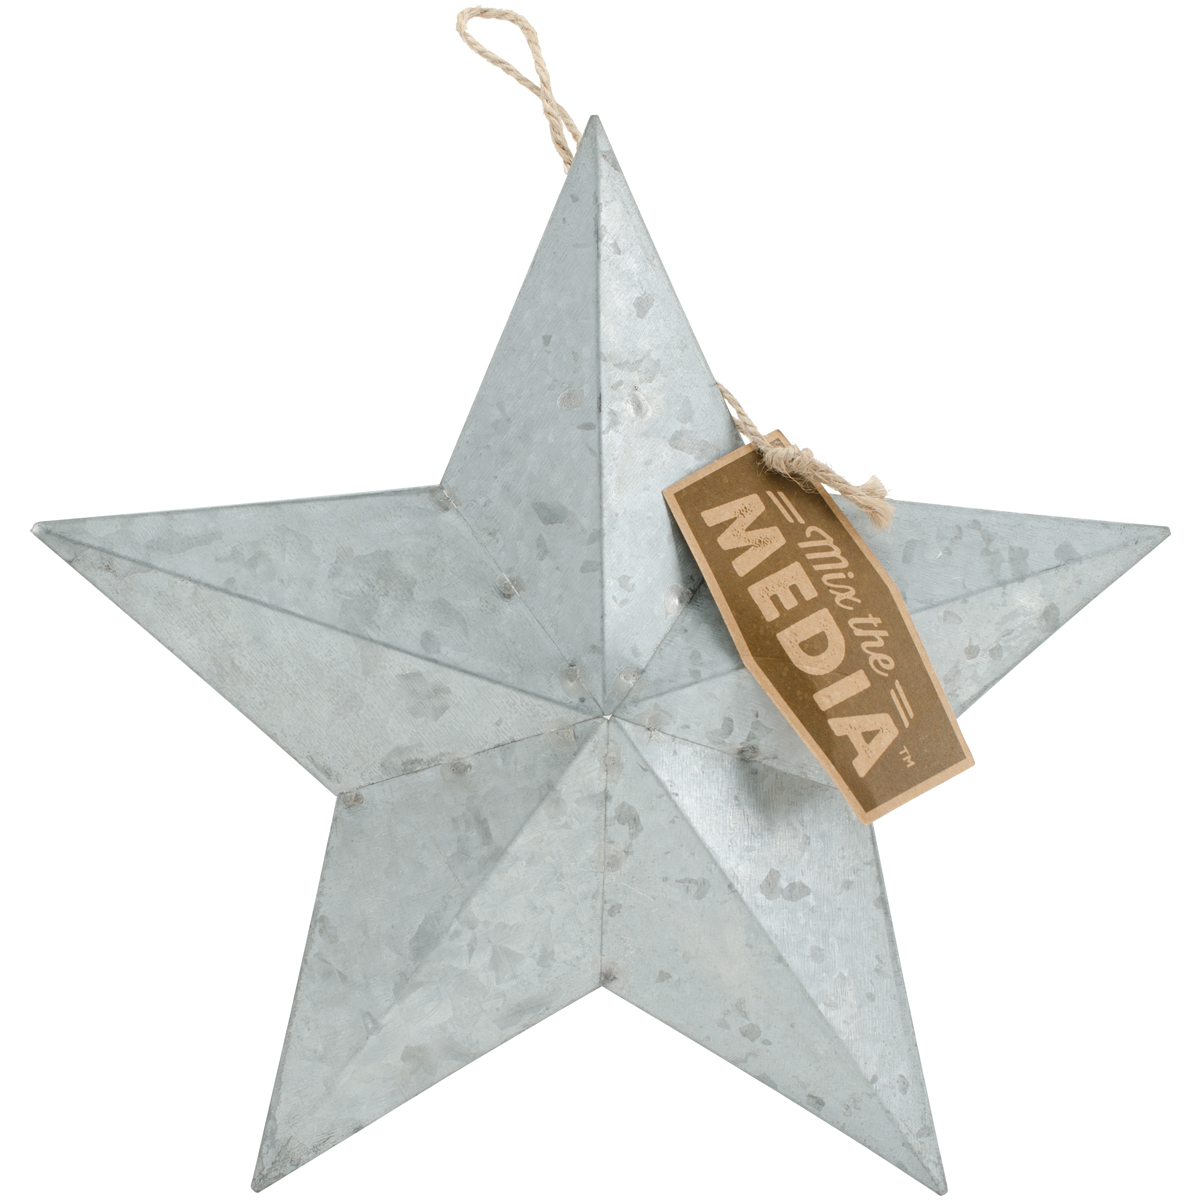 Jillibean Soup Mix The Media Galvanized Star-9.25 W/Jute Hanger